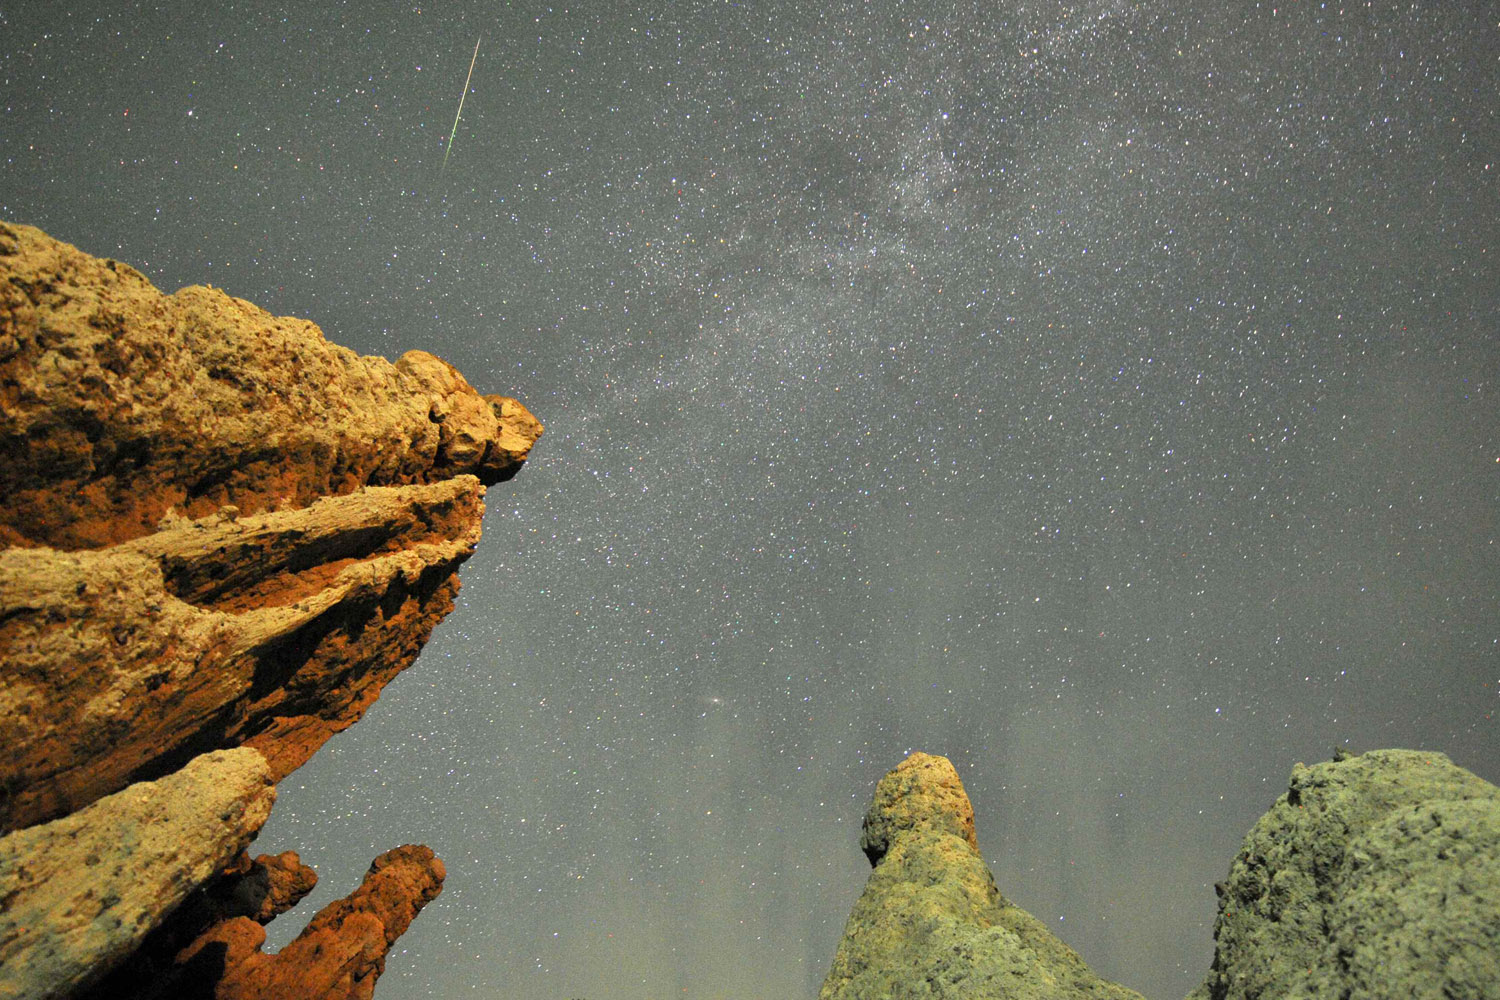 Aug. 13, 2012. A meteor streaks past stars in the night sky over the village of Kuklici, Macedonia.